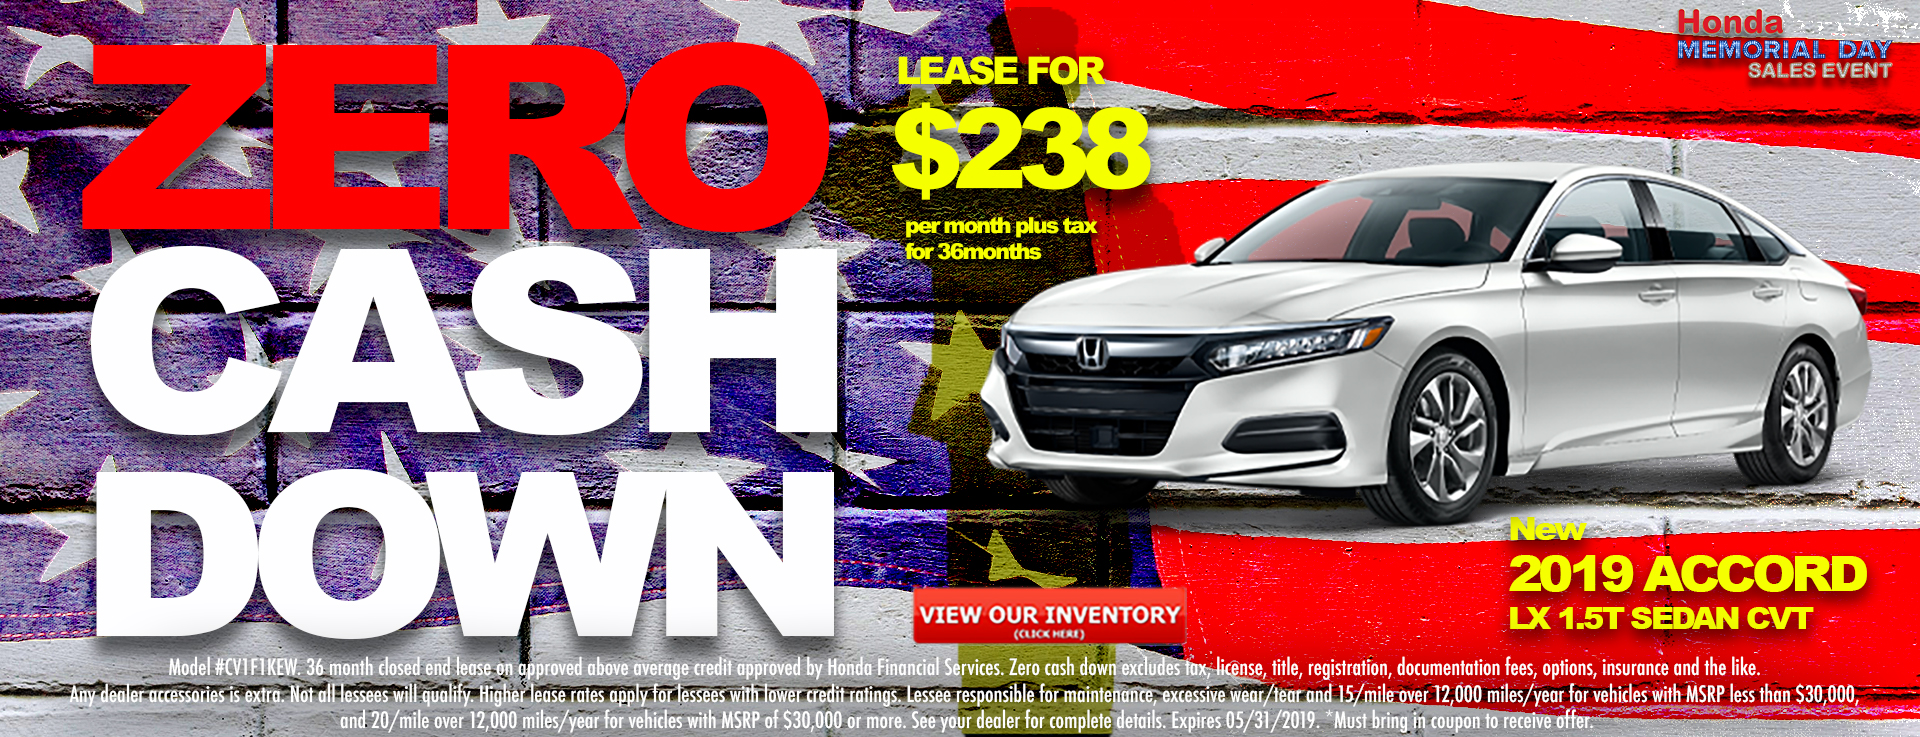 Honda Accord Sedan $238 Lease